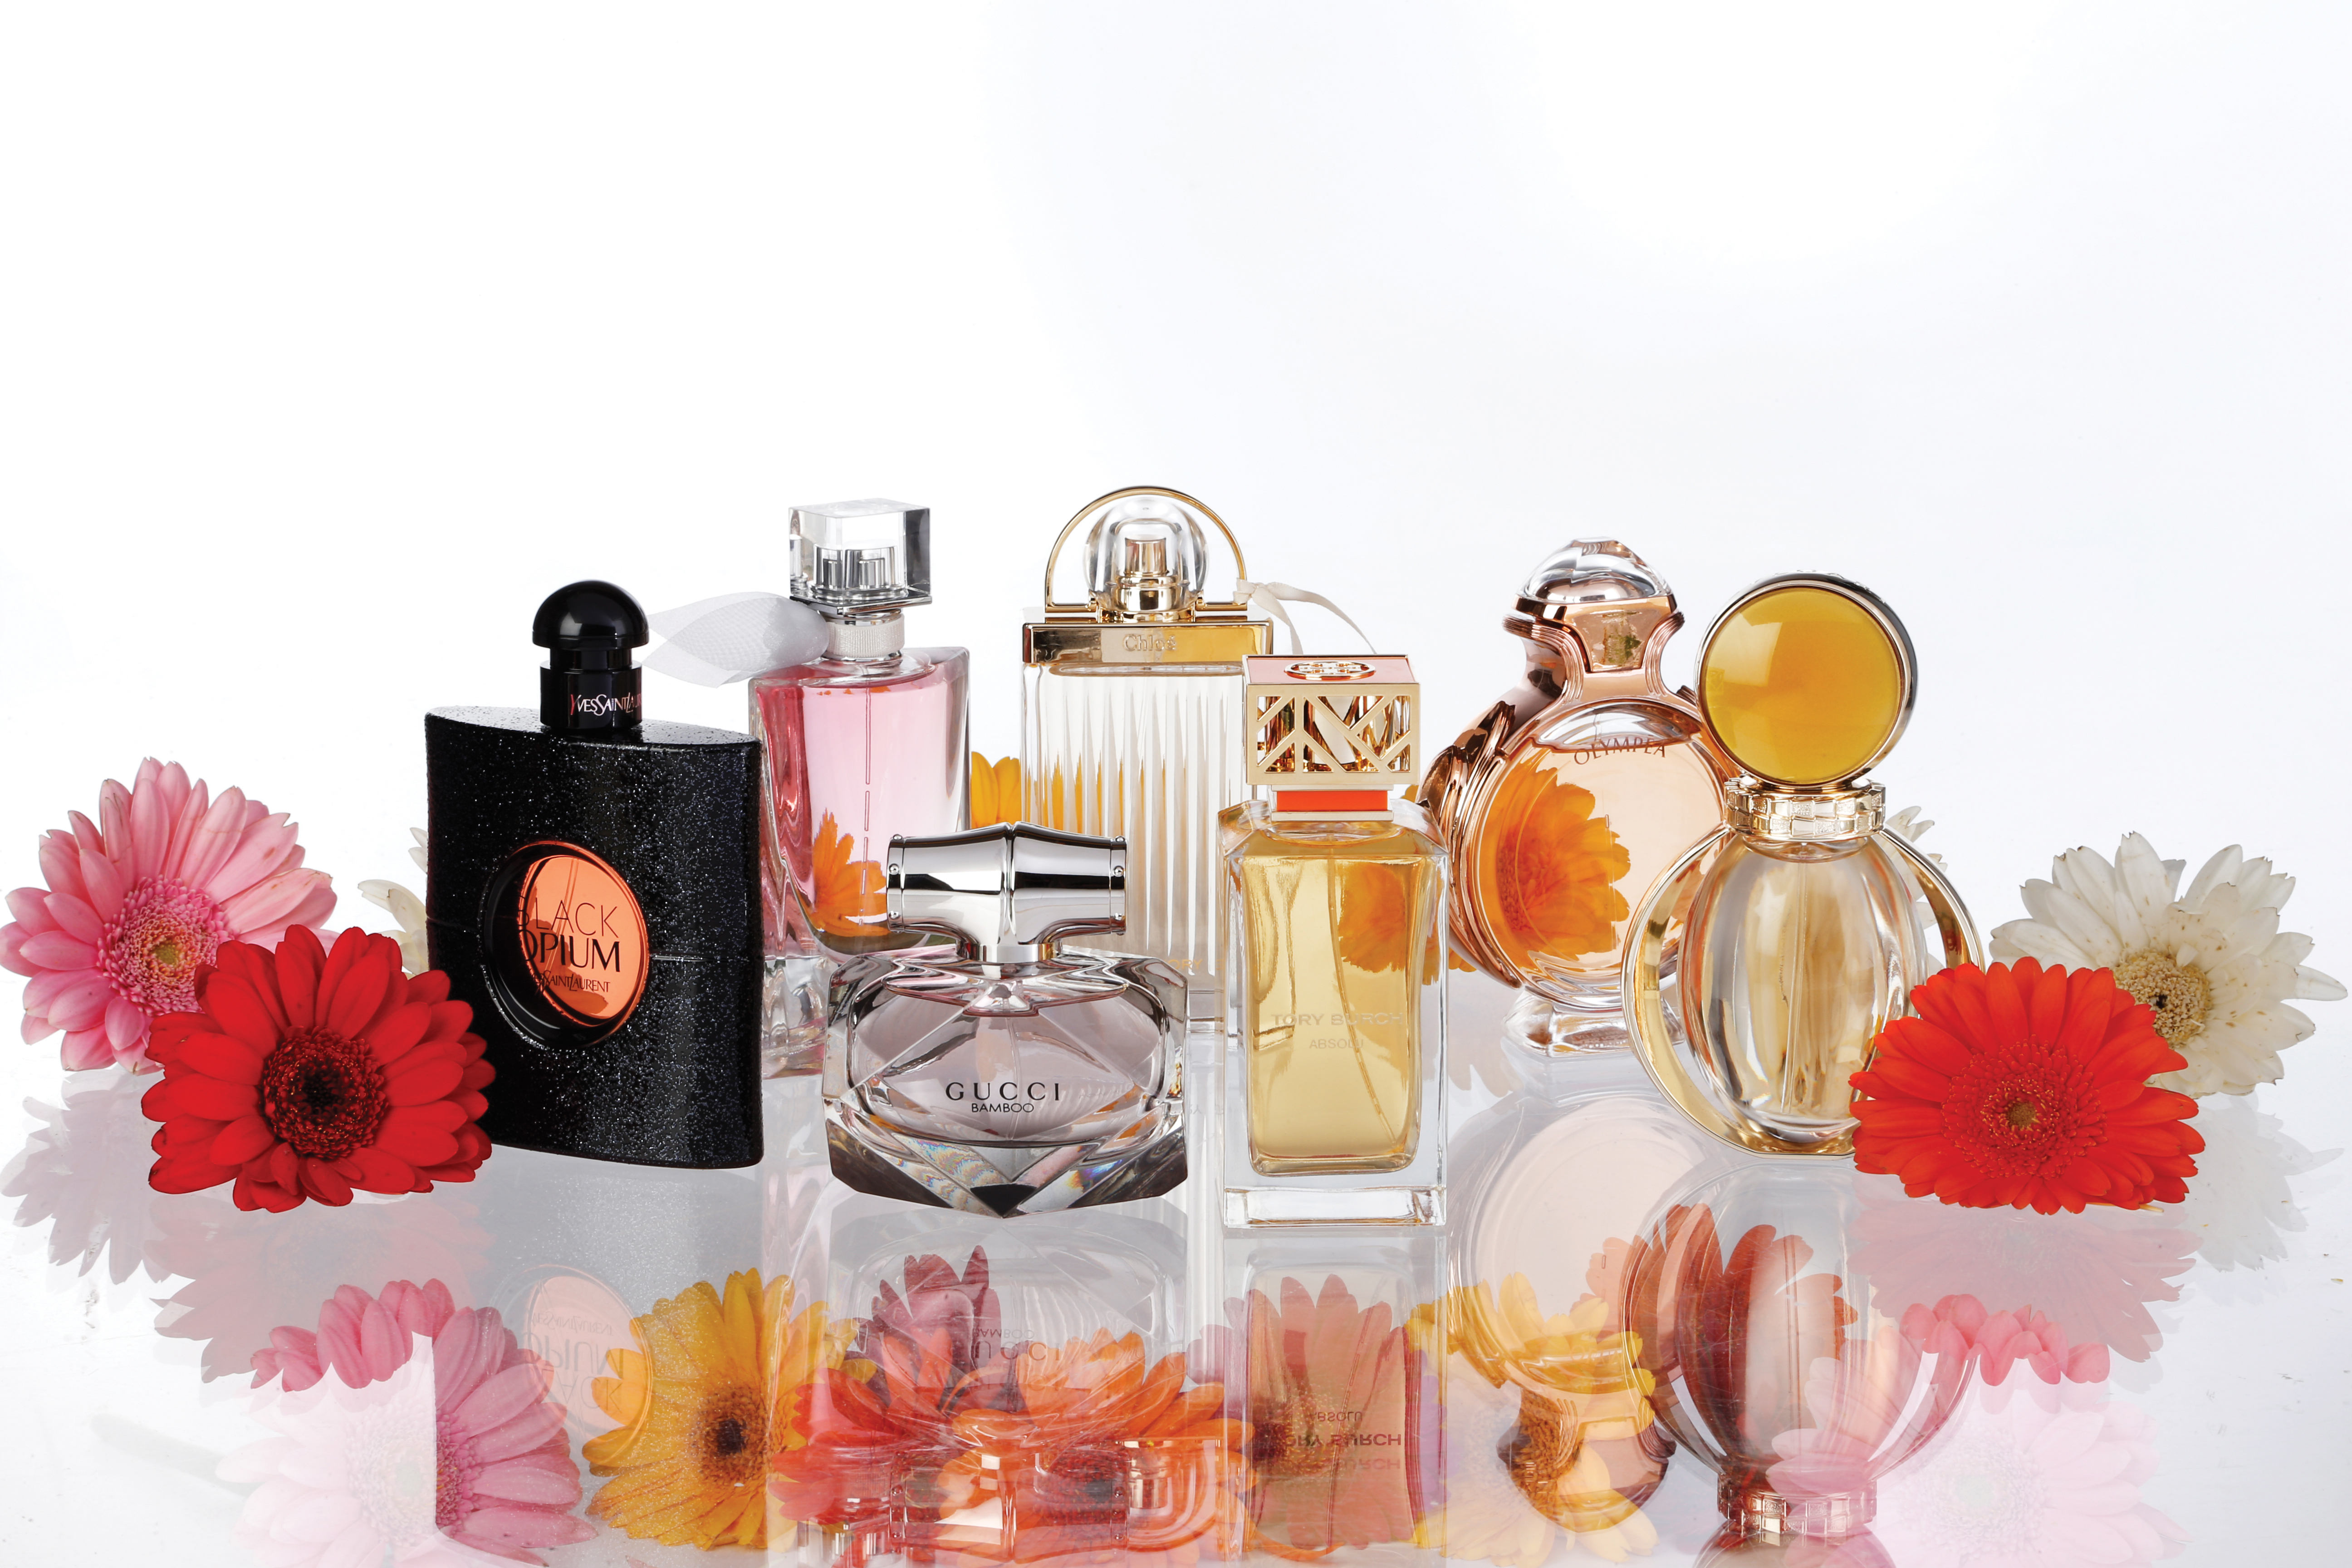 Some of the top women's fragrance launches of the last year.